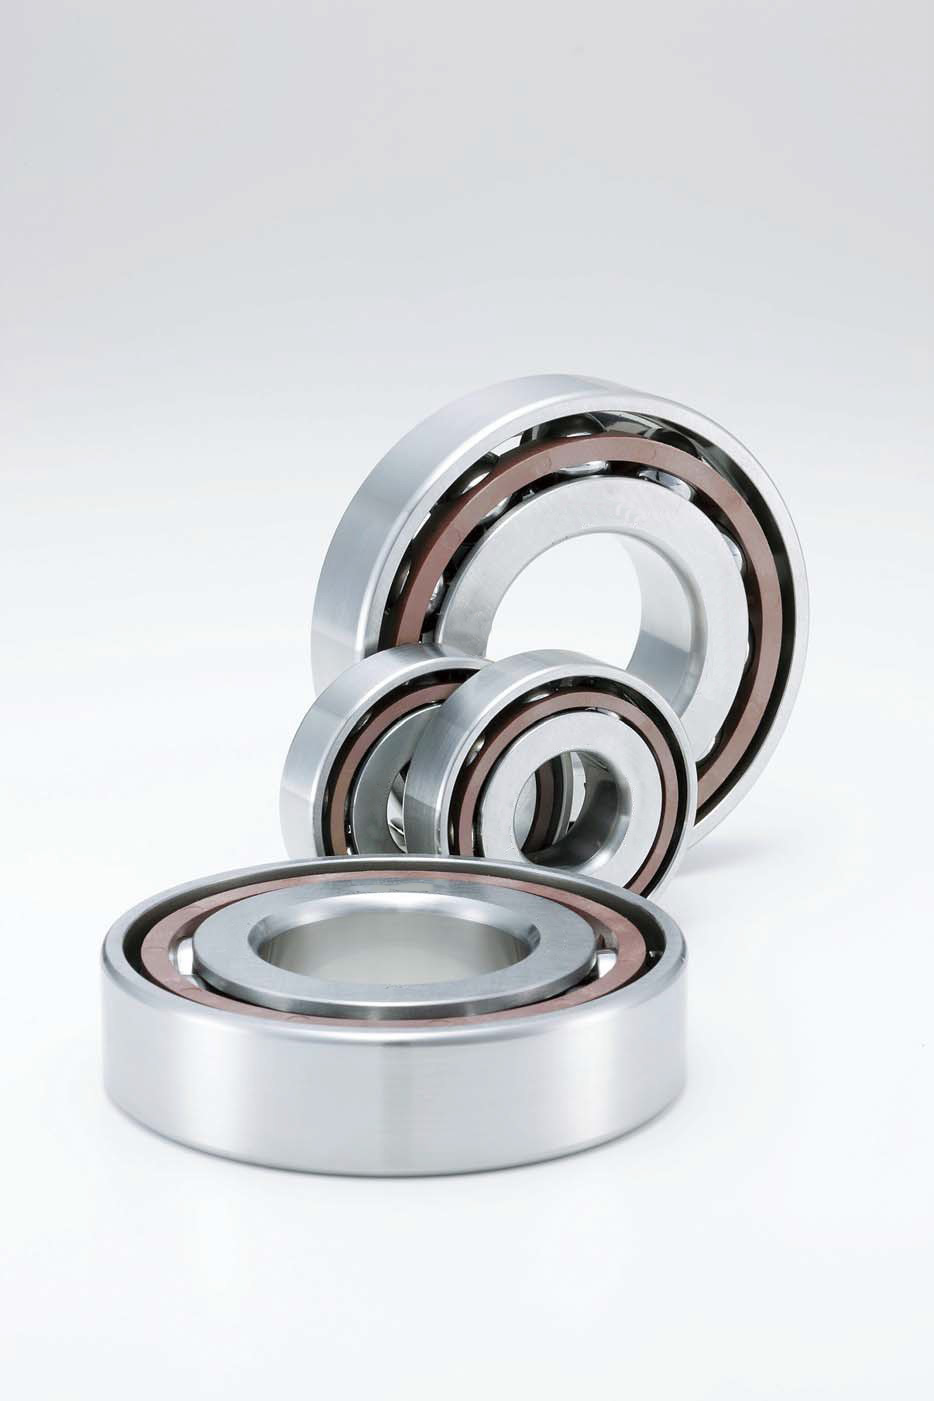 7005C TYN SUL P4 Spindle Angular Contact Ball Bearings ABEC-7 7005 7005C 7005AC 25x47x12 SUPER PRECISION BEARING 1pcs 71901 71901cd p4 7901 12x24x6 mochu thin walled miniature angular contact bearings speed spindle bearings cnc abec 7